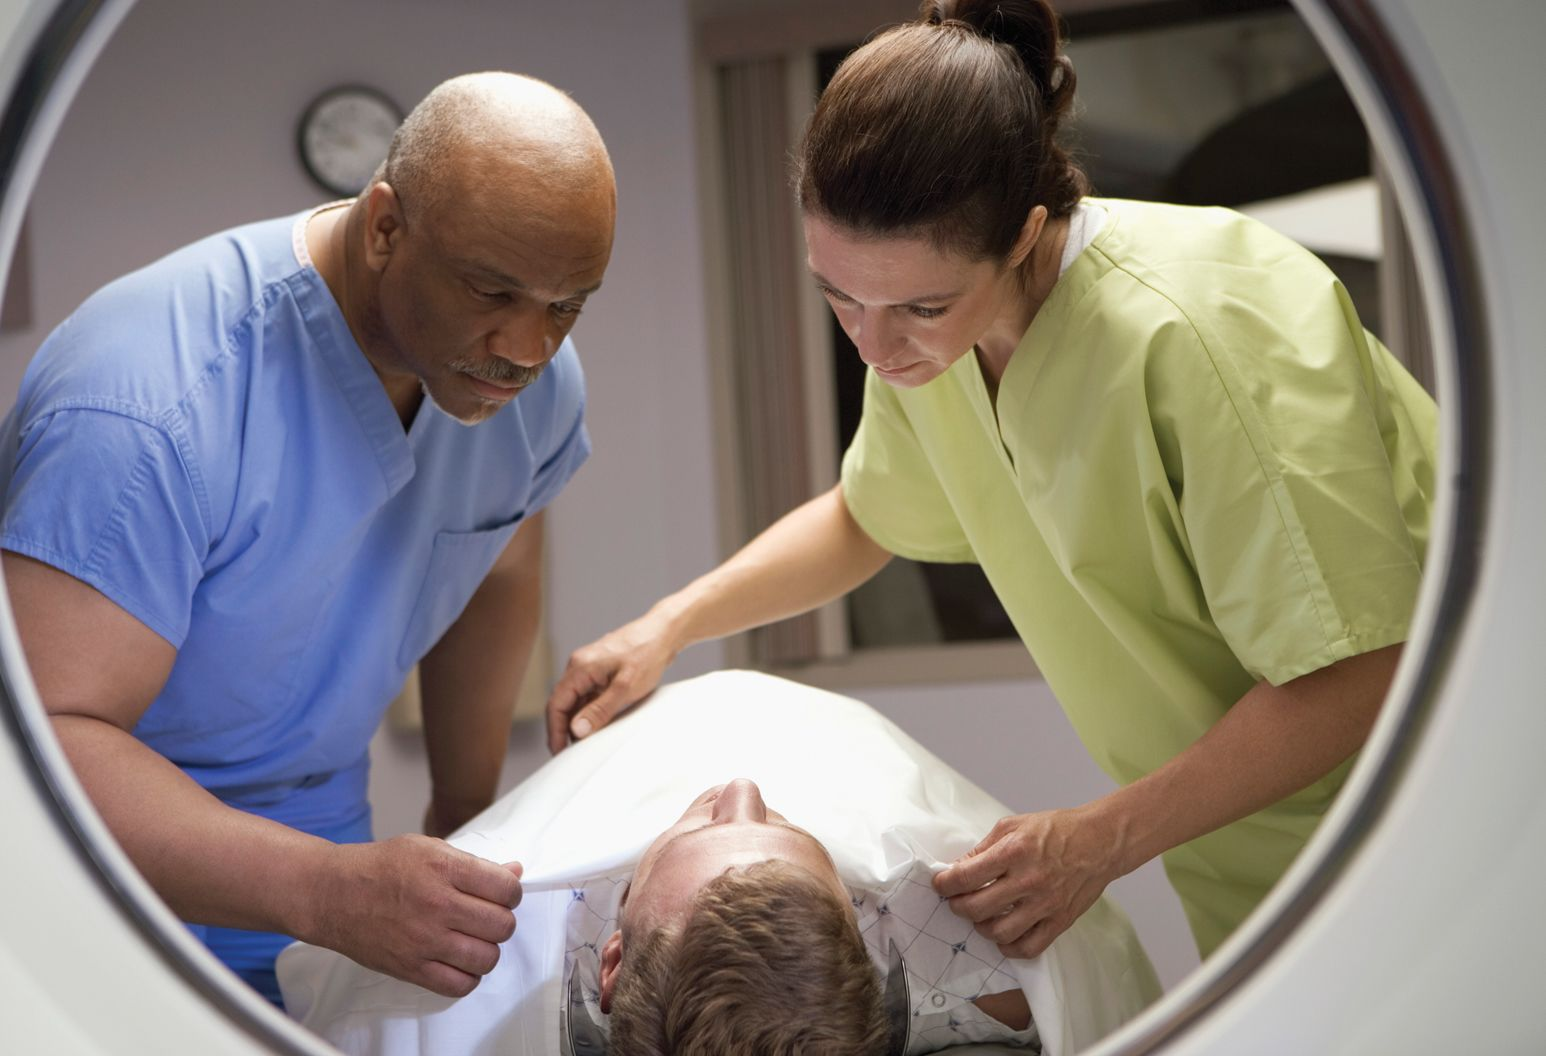 Two nurses in blue and yellow scrubs prepare a patient to receive imaging treatment